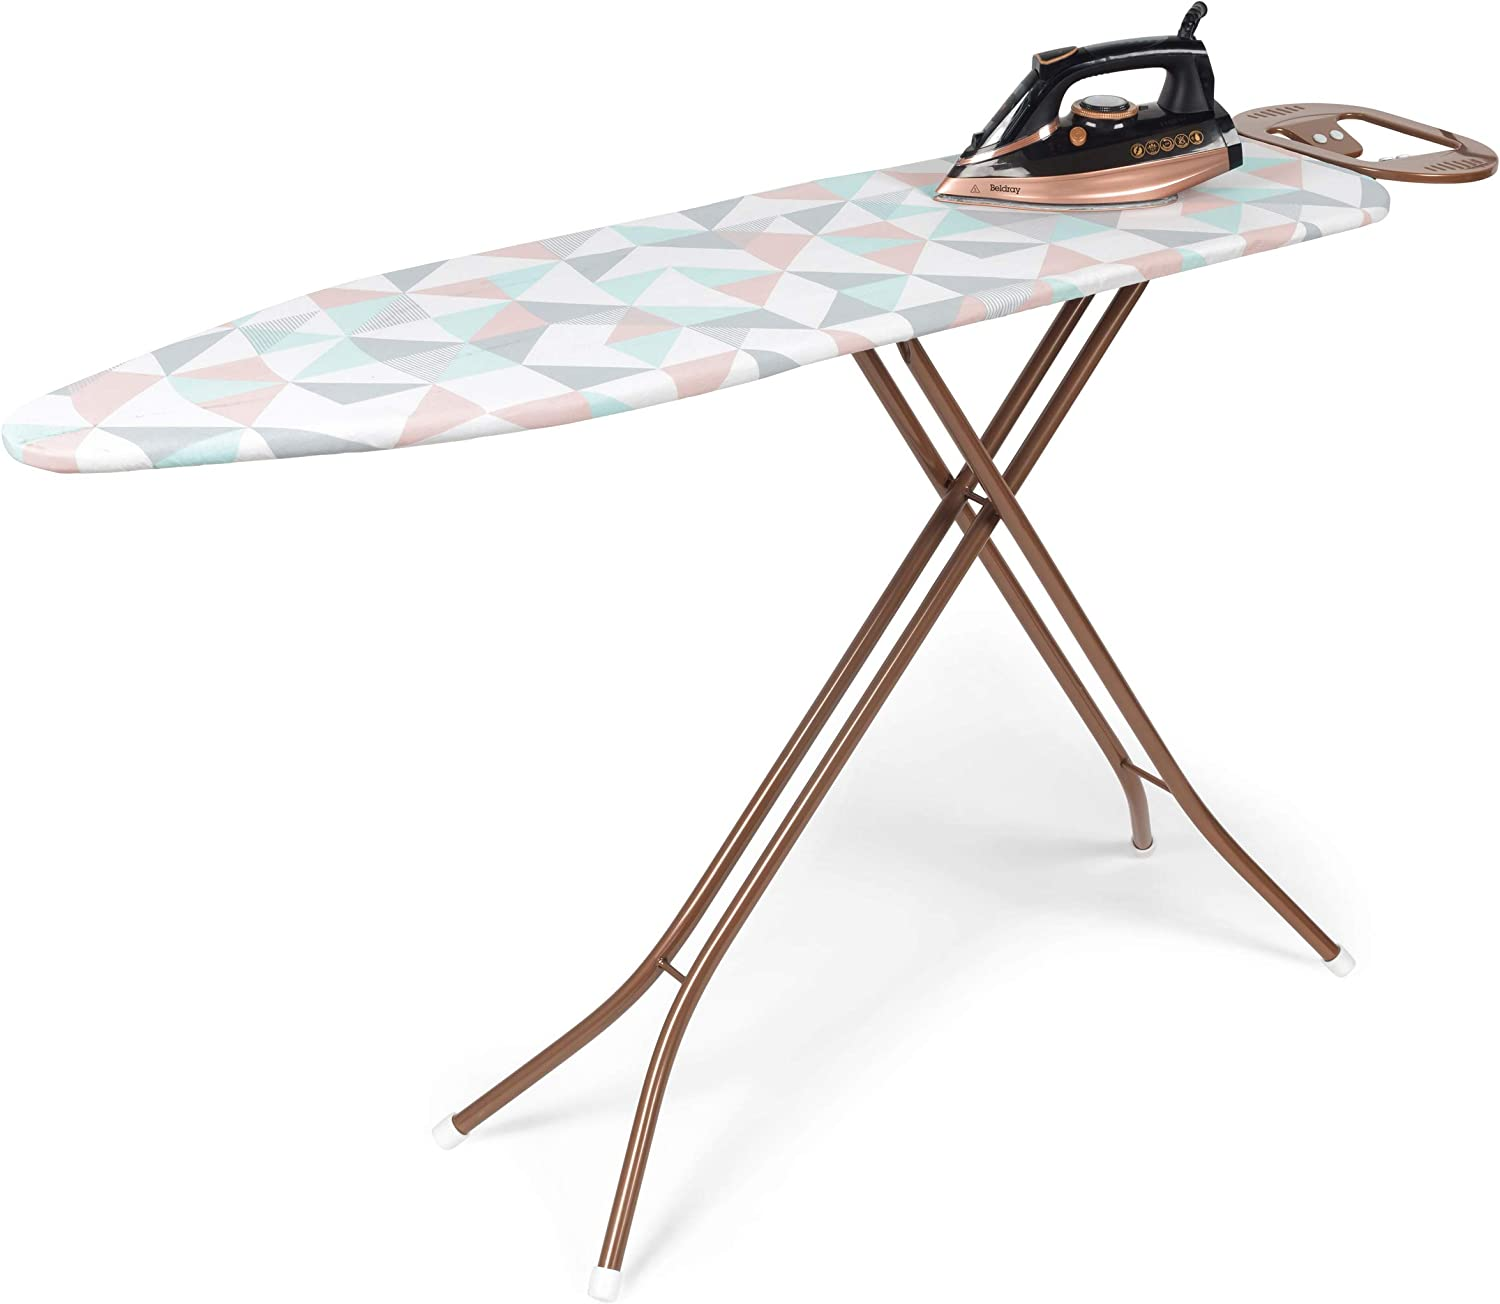 300 ml Beldray/® COMBO-5148 Ultra Ceramic Steam Iron with Dual Soleplate Technology and Glisten Folding Ironing Board Rose Gold 3100 W